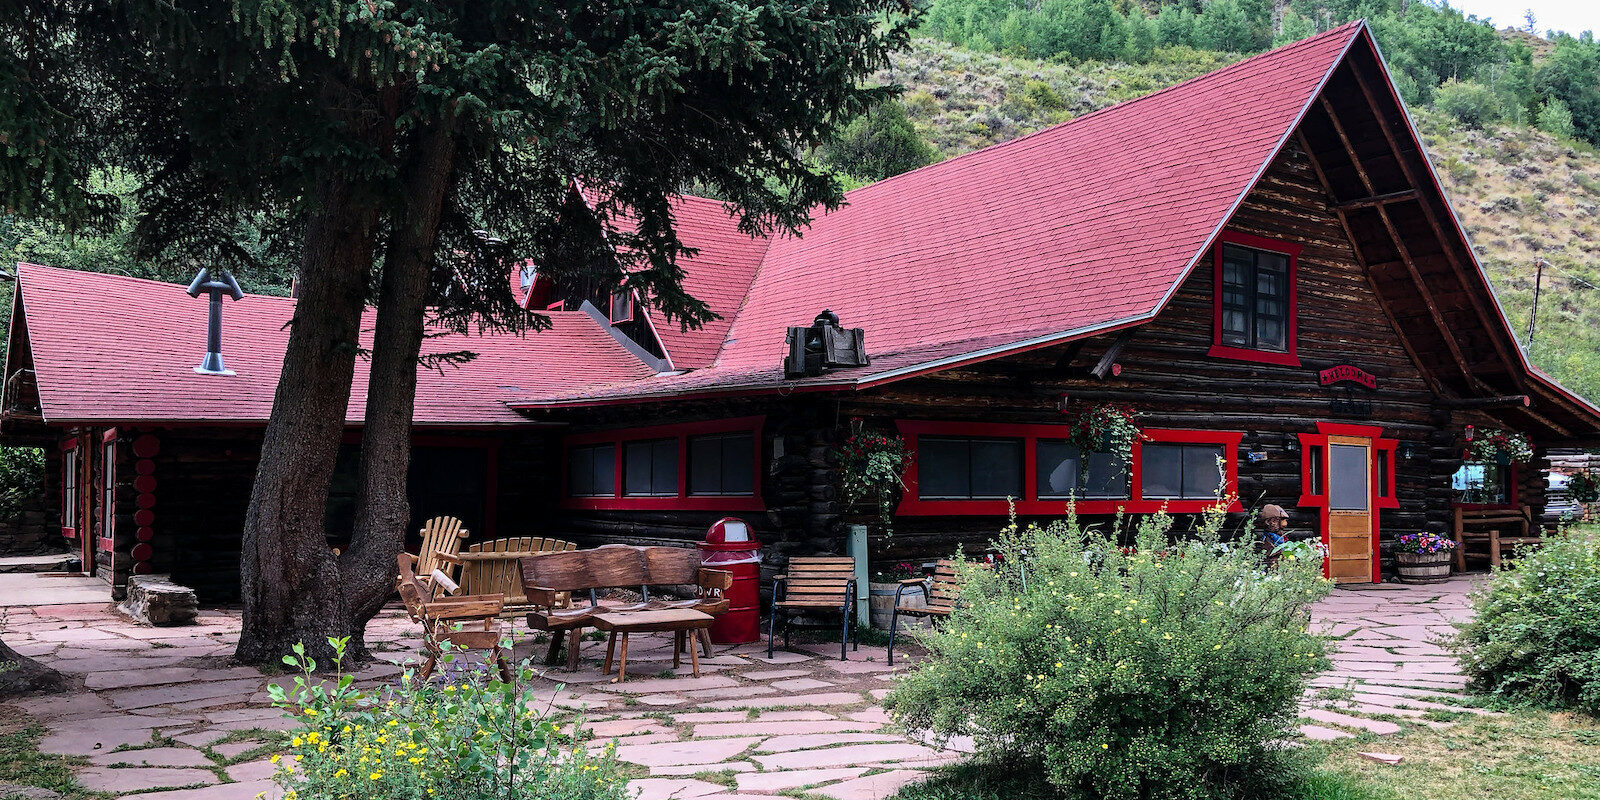 Image of a lodging at the Drowsy Water Dude Ranch in Granby, Colorado